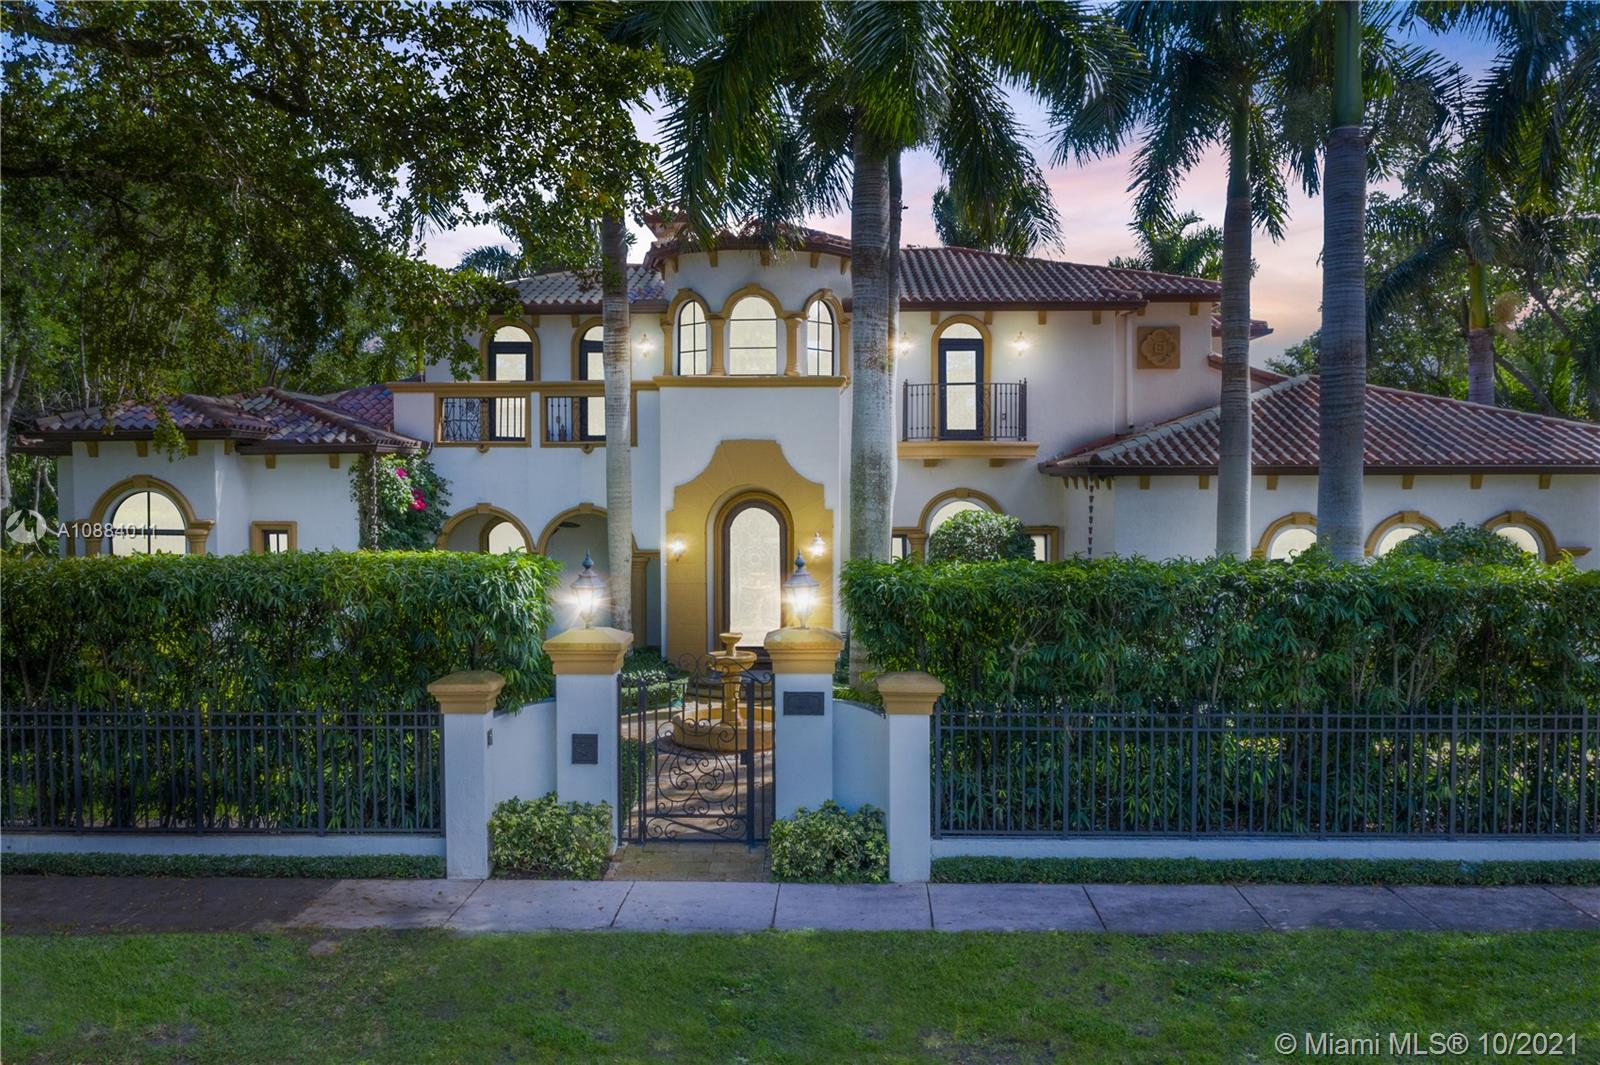 This exquisite residence is tastefully built and set on over half an acre in the heart of Coral Gables. A secluded sanctuary offering a combination of hand crafted natural stones and woodwork including walnut and unique cedar finishes. This beautifully designed, two story home features high ceilings, entertainment area with bar & 400 plus bottle wine cellar, architectural landscape, impact windows and an amazing exposure of VIRTALES art windows on the inside, marble floors, 3 car garage, and an extra large gourmet kitchen. The driveway and deck are all made from an unique natural stone from Brazil.This home is truly one of a kind and provides those looking for an exclusive residence a retreat from it all while still conveniently located only one mile from Coral Gable's Famous Miracle Mile!